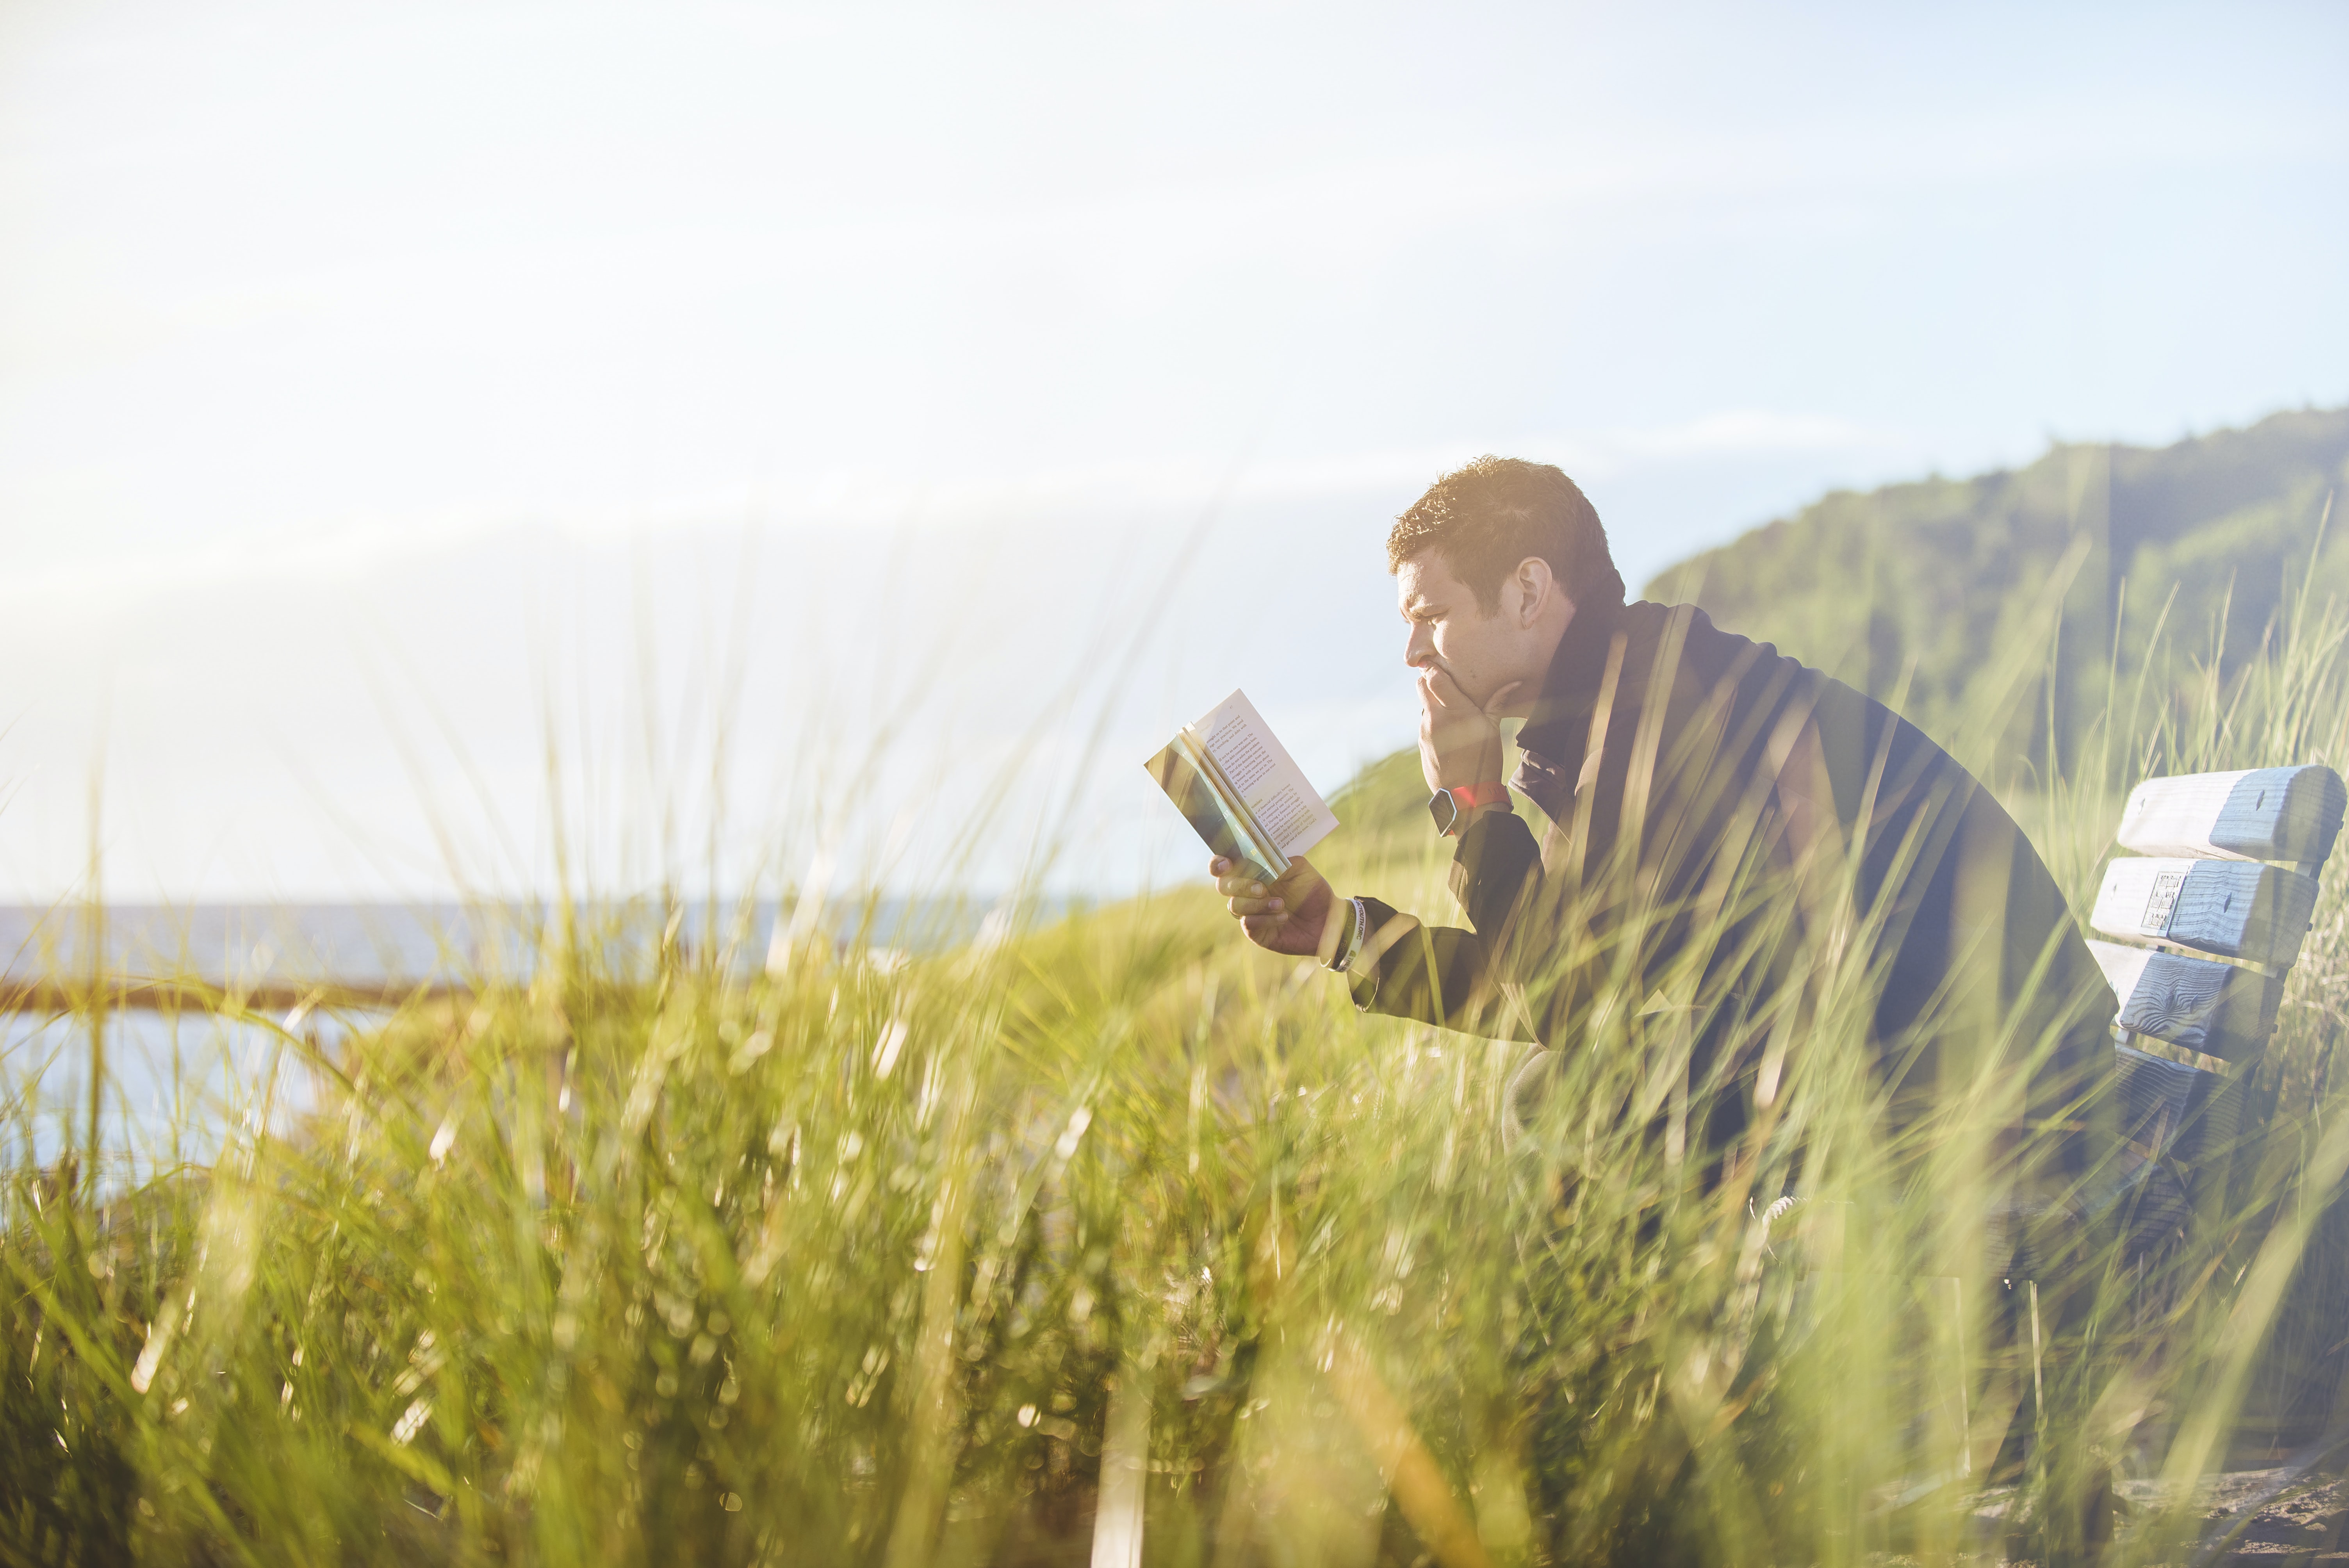 man reading book on beach near lake during daytime